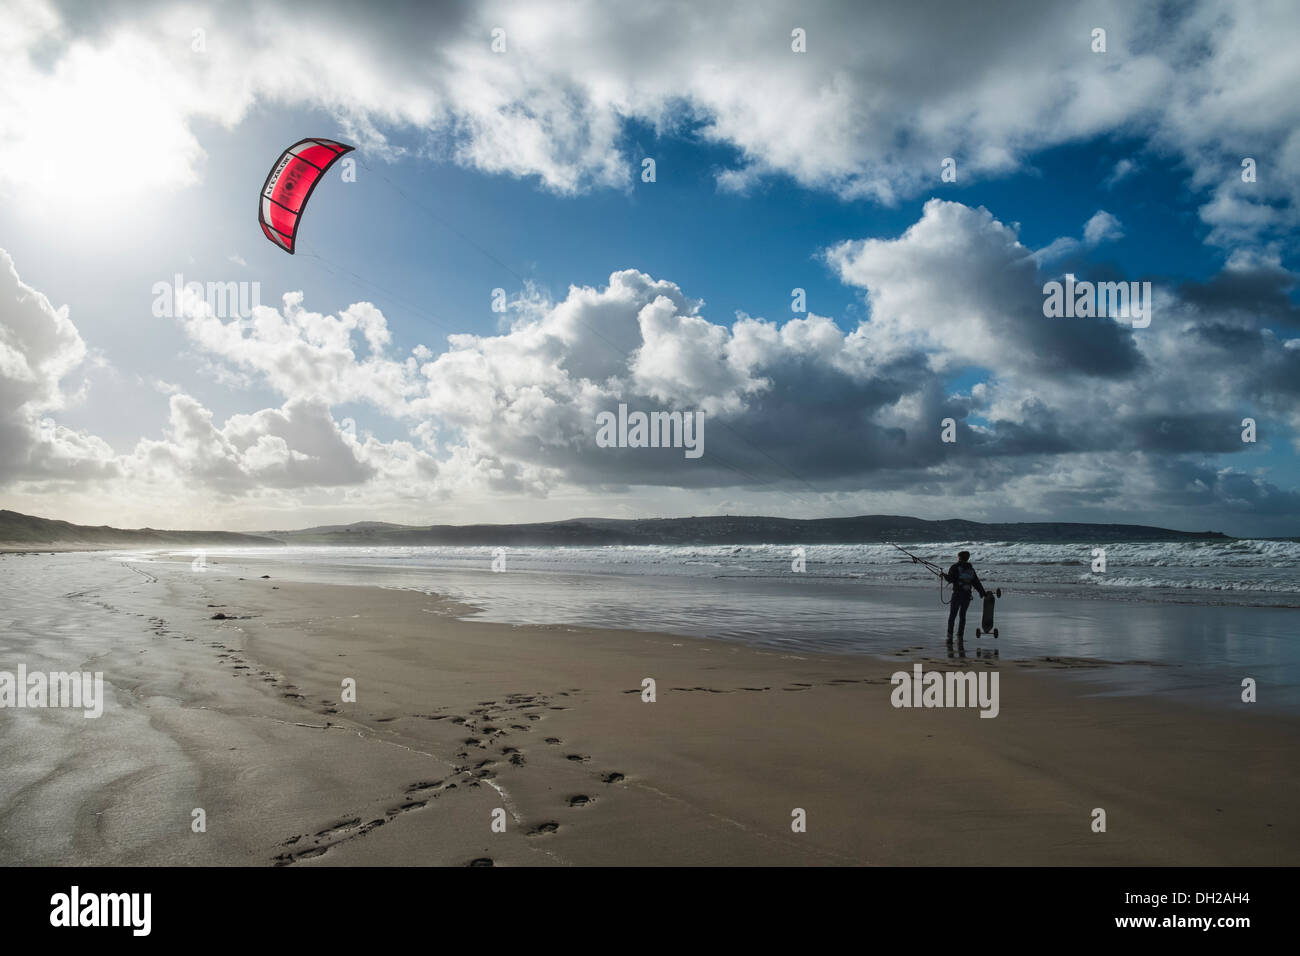 29/10/2013 A land boarder waits at Gwithian Beach, Hayle. Picture by Julie Edwards - Stock Image